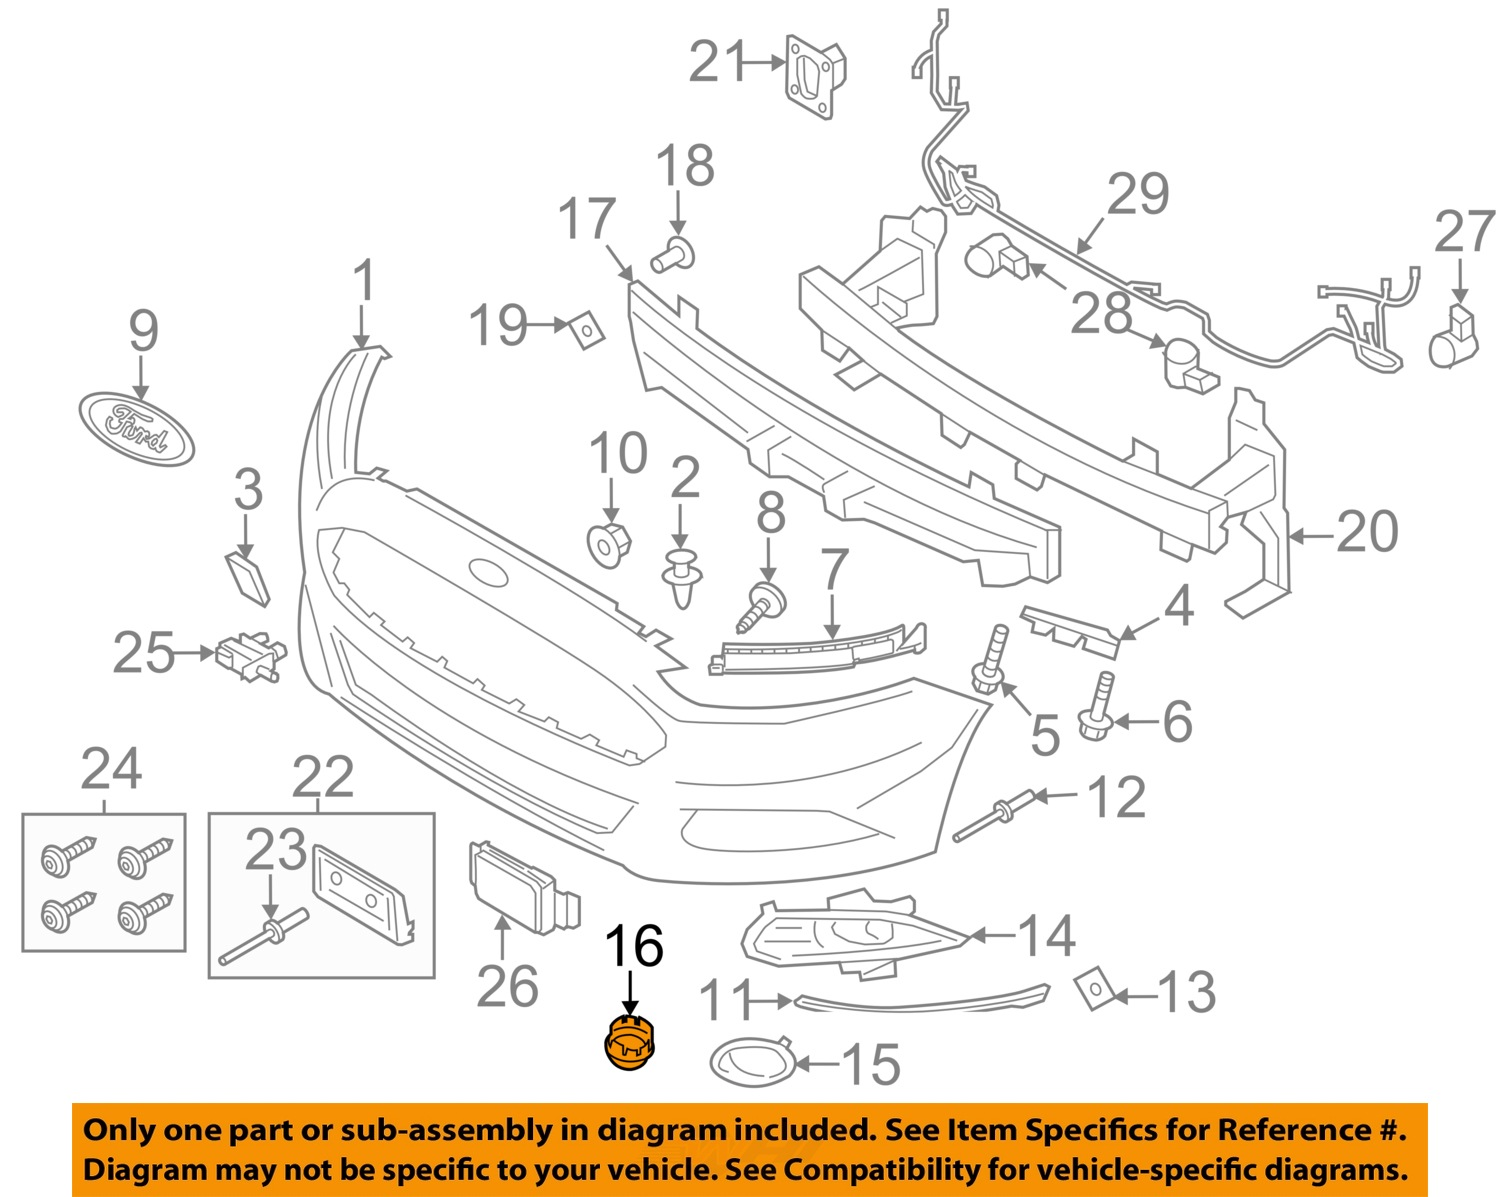 hight resolution of ford fusion oem parts diagram enthusiast wiring diagrams u2022 2006 ford fusion thermostat diagram 2012 ford fusion parts diagram